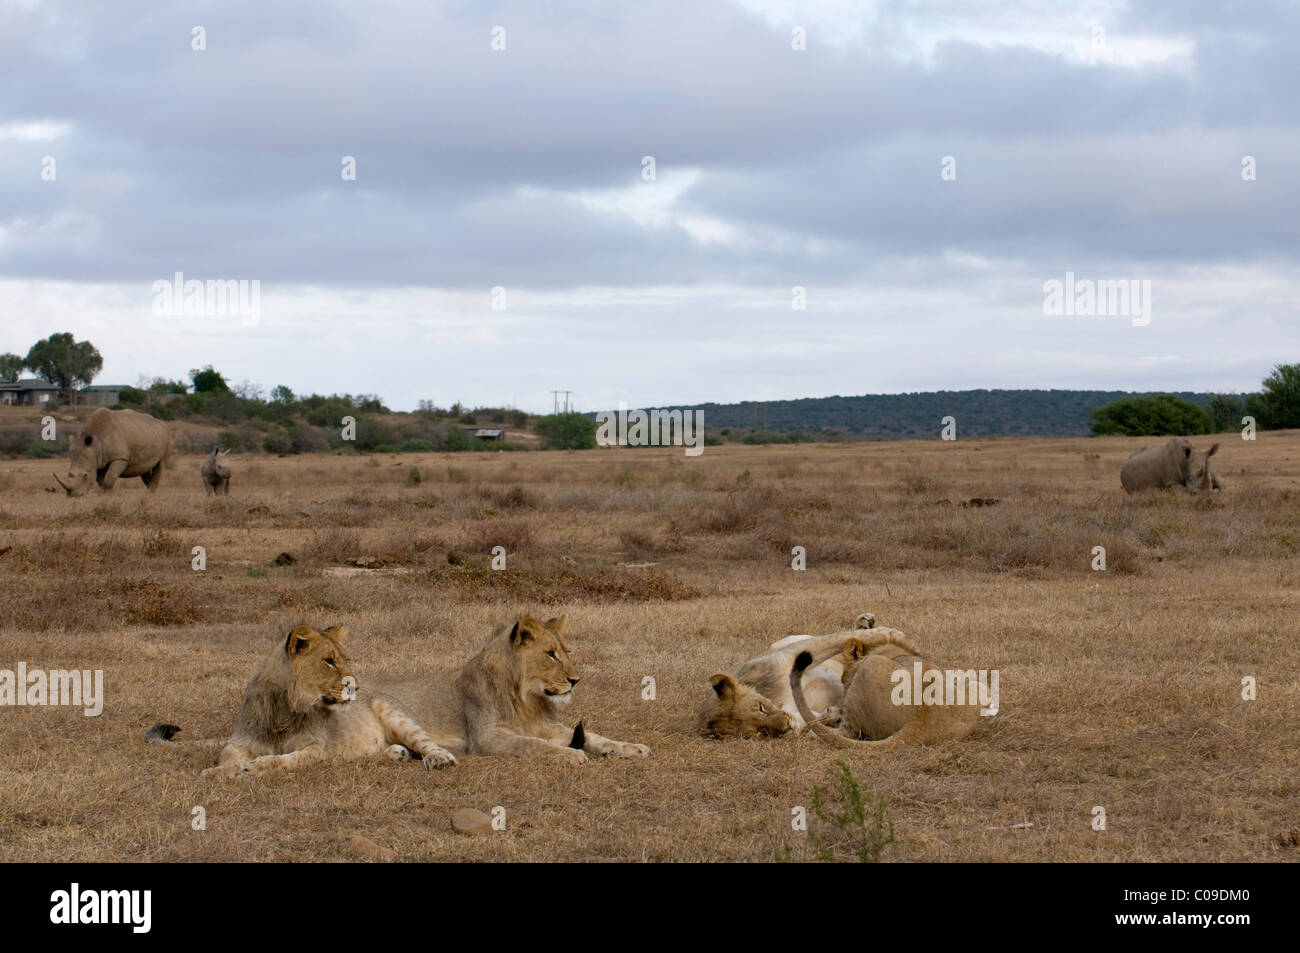 Young Lions and White Rhinos, Kwandwe Game Reserve, Eastern Cape, South Africa - Stock Image